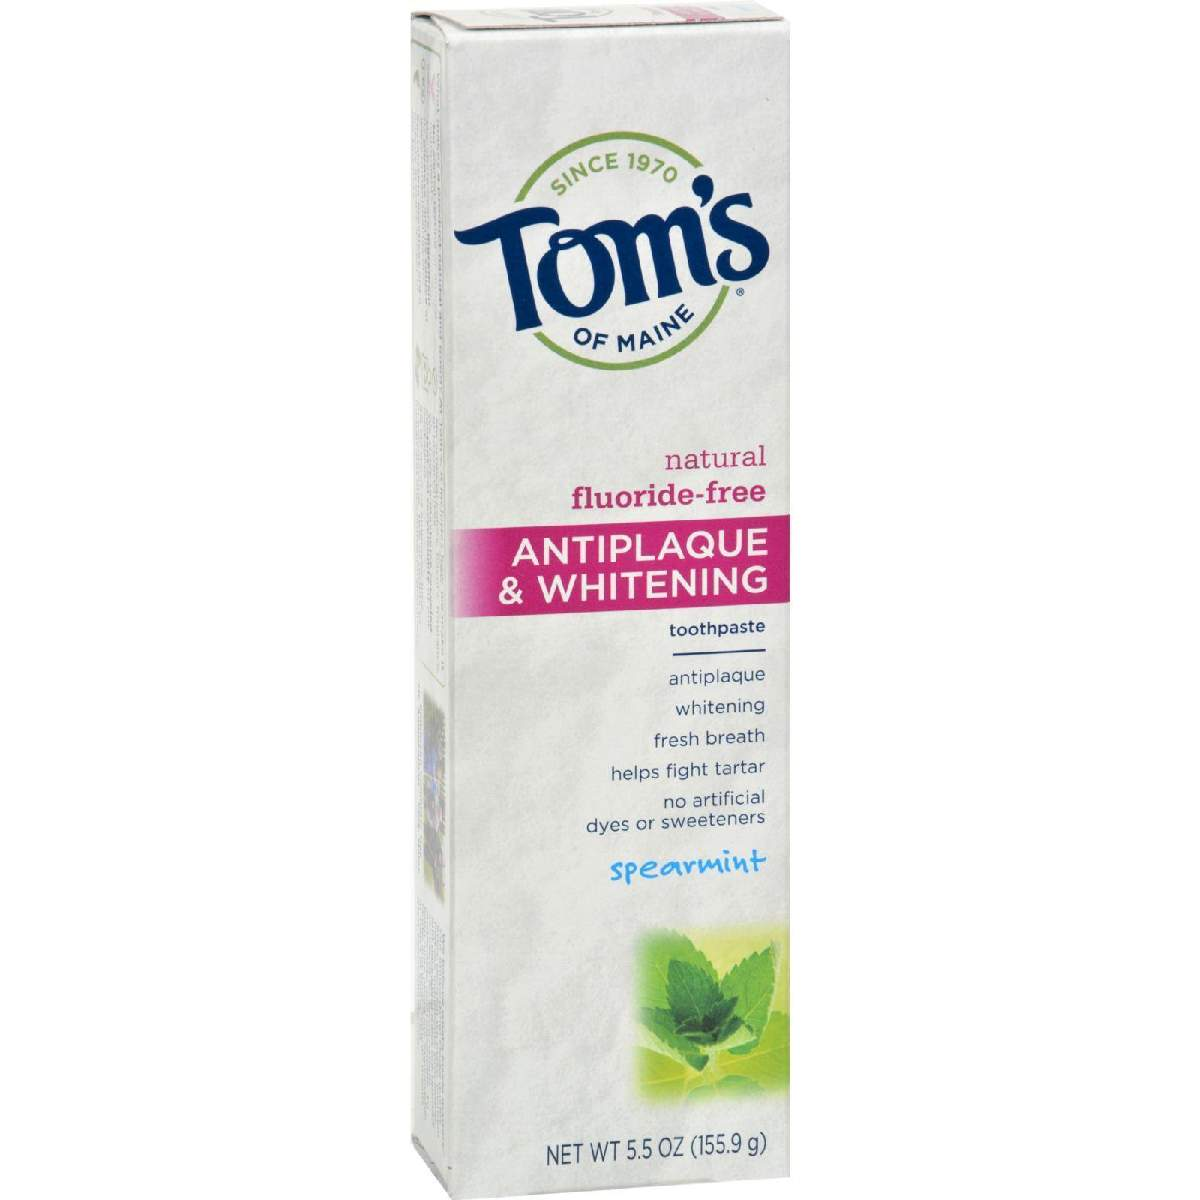 Toms Of Maine Antiplaque And Whitening Toothpaste Spearmint - 5.5 Oz - Case 6